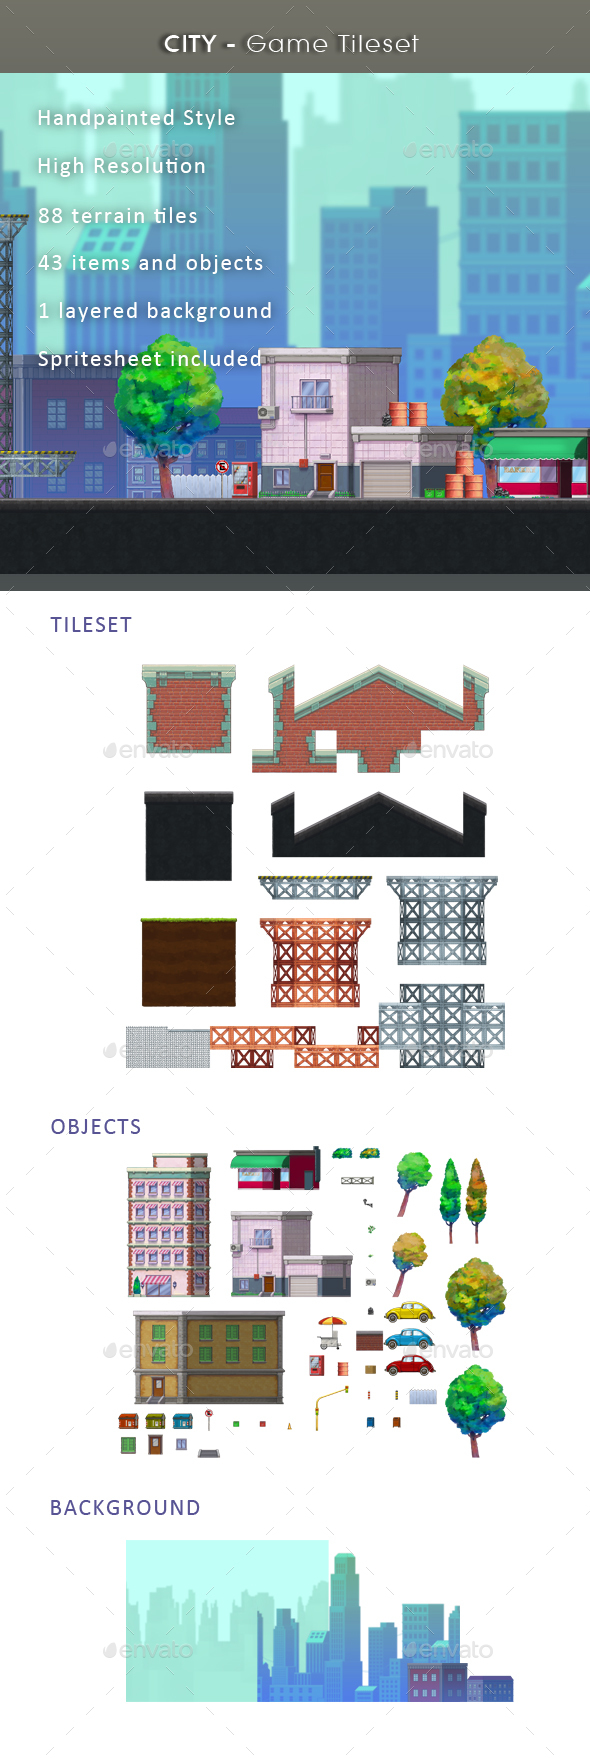 Graphicriver City - Game Tileset 19463529